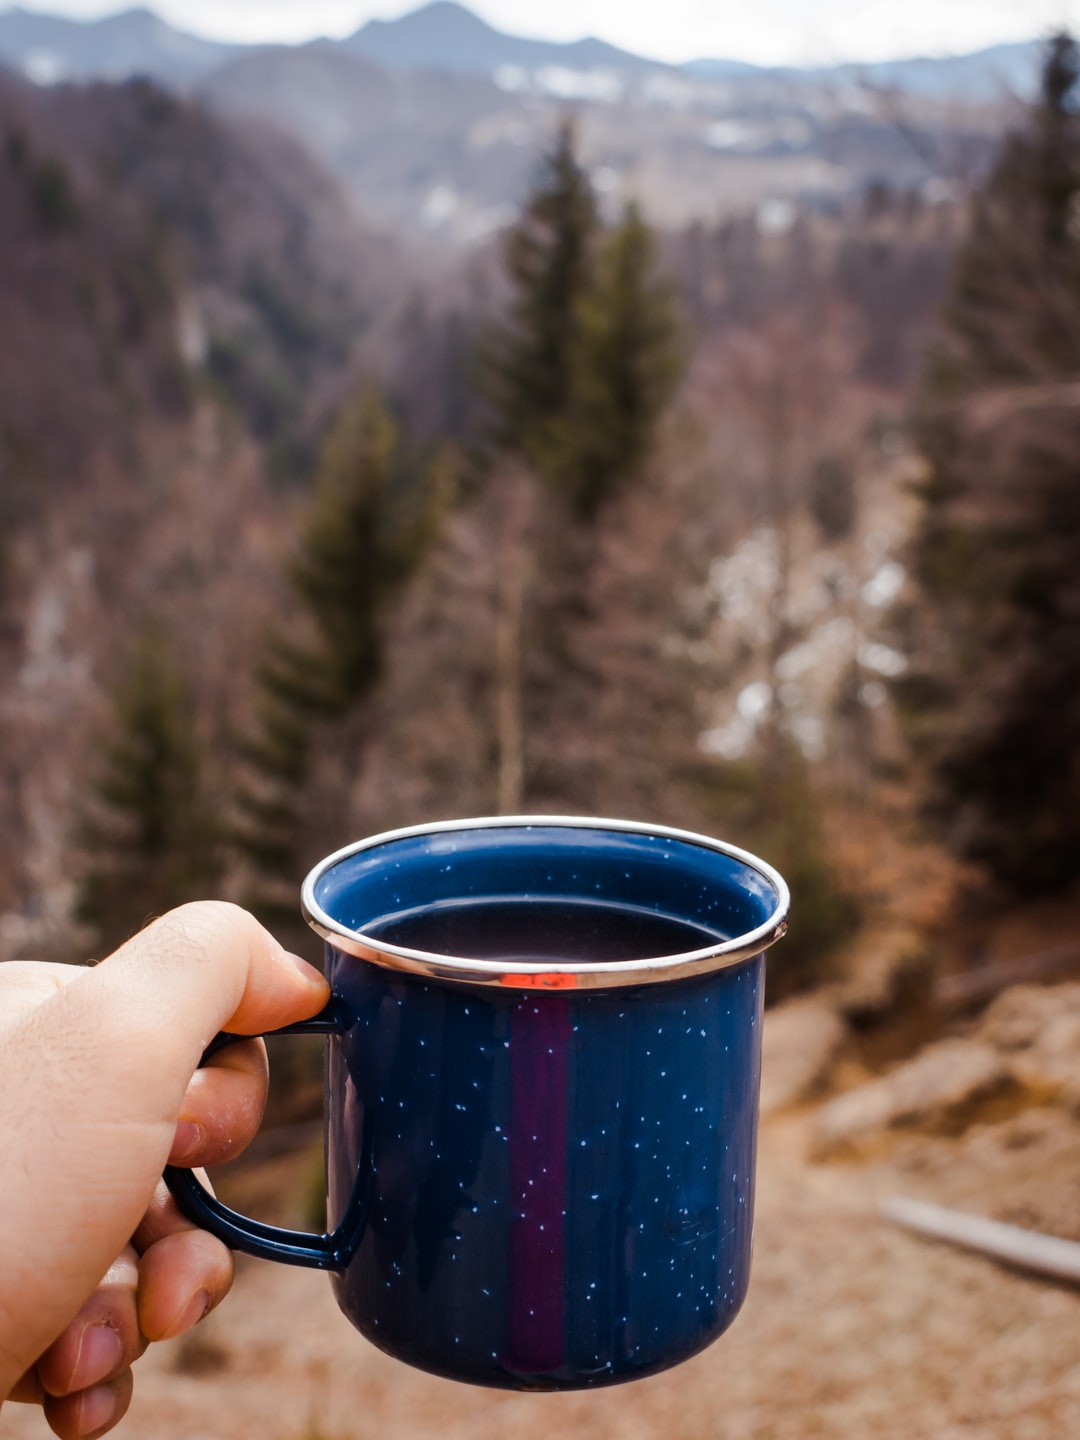 I keep the habit of a cup of warm tea on every mountain peak.